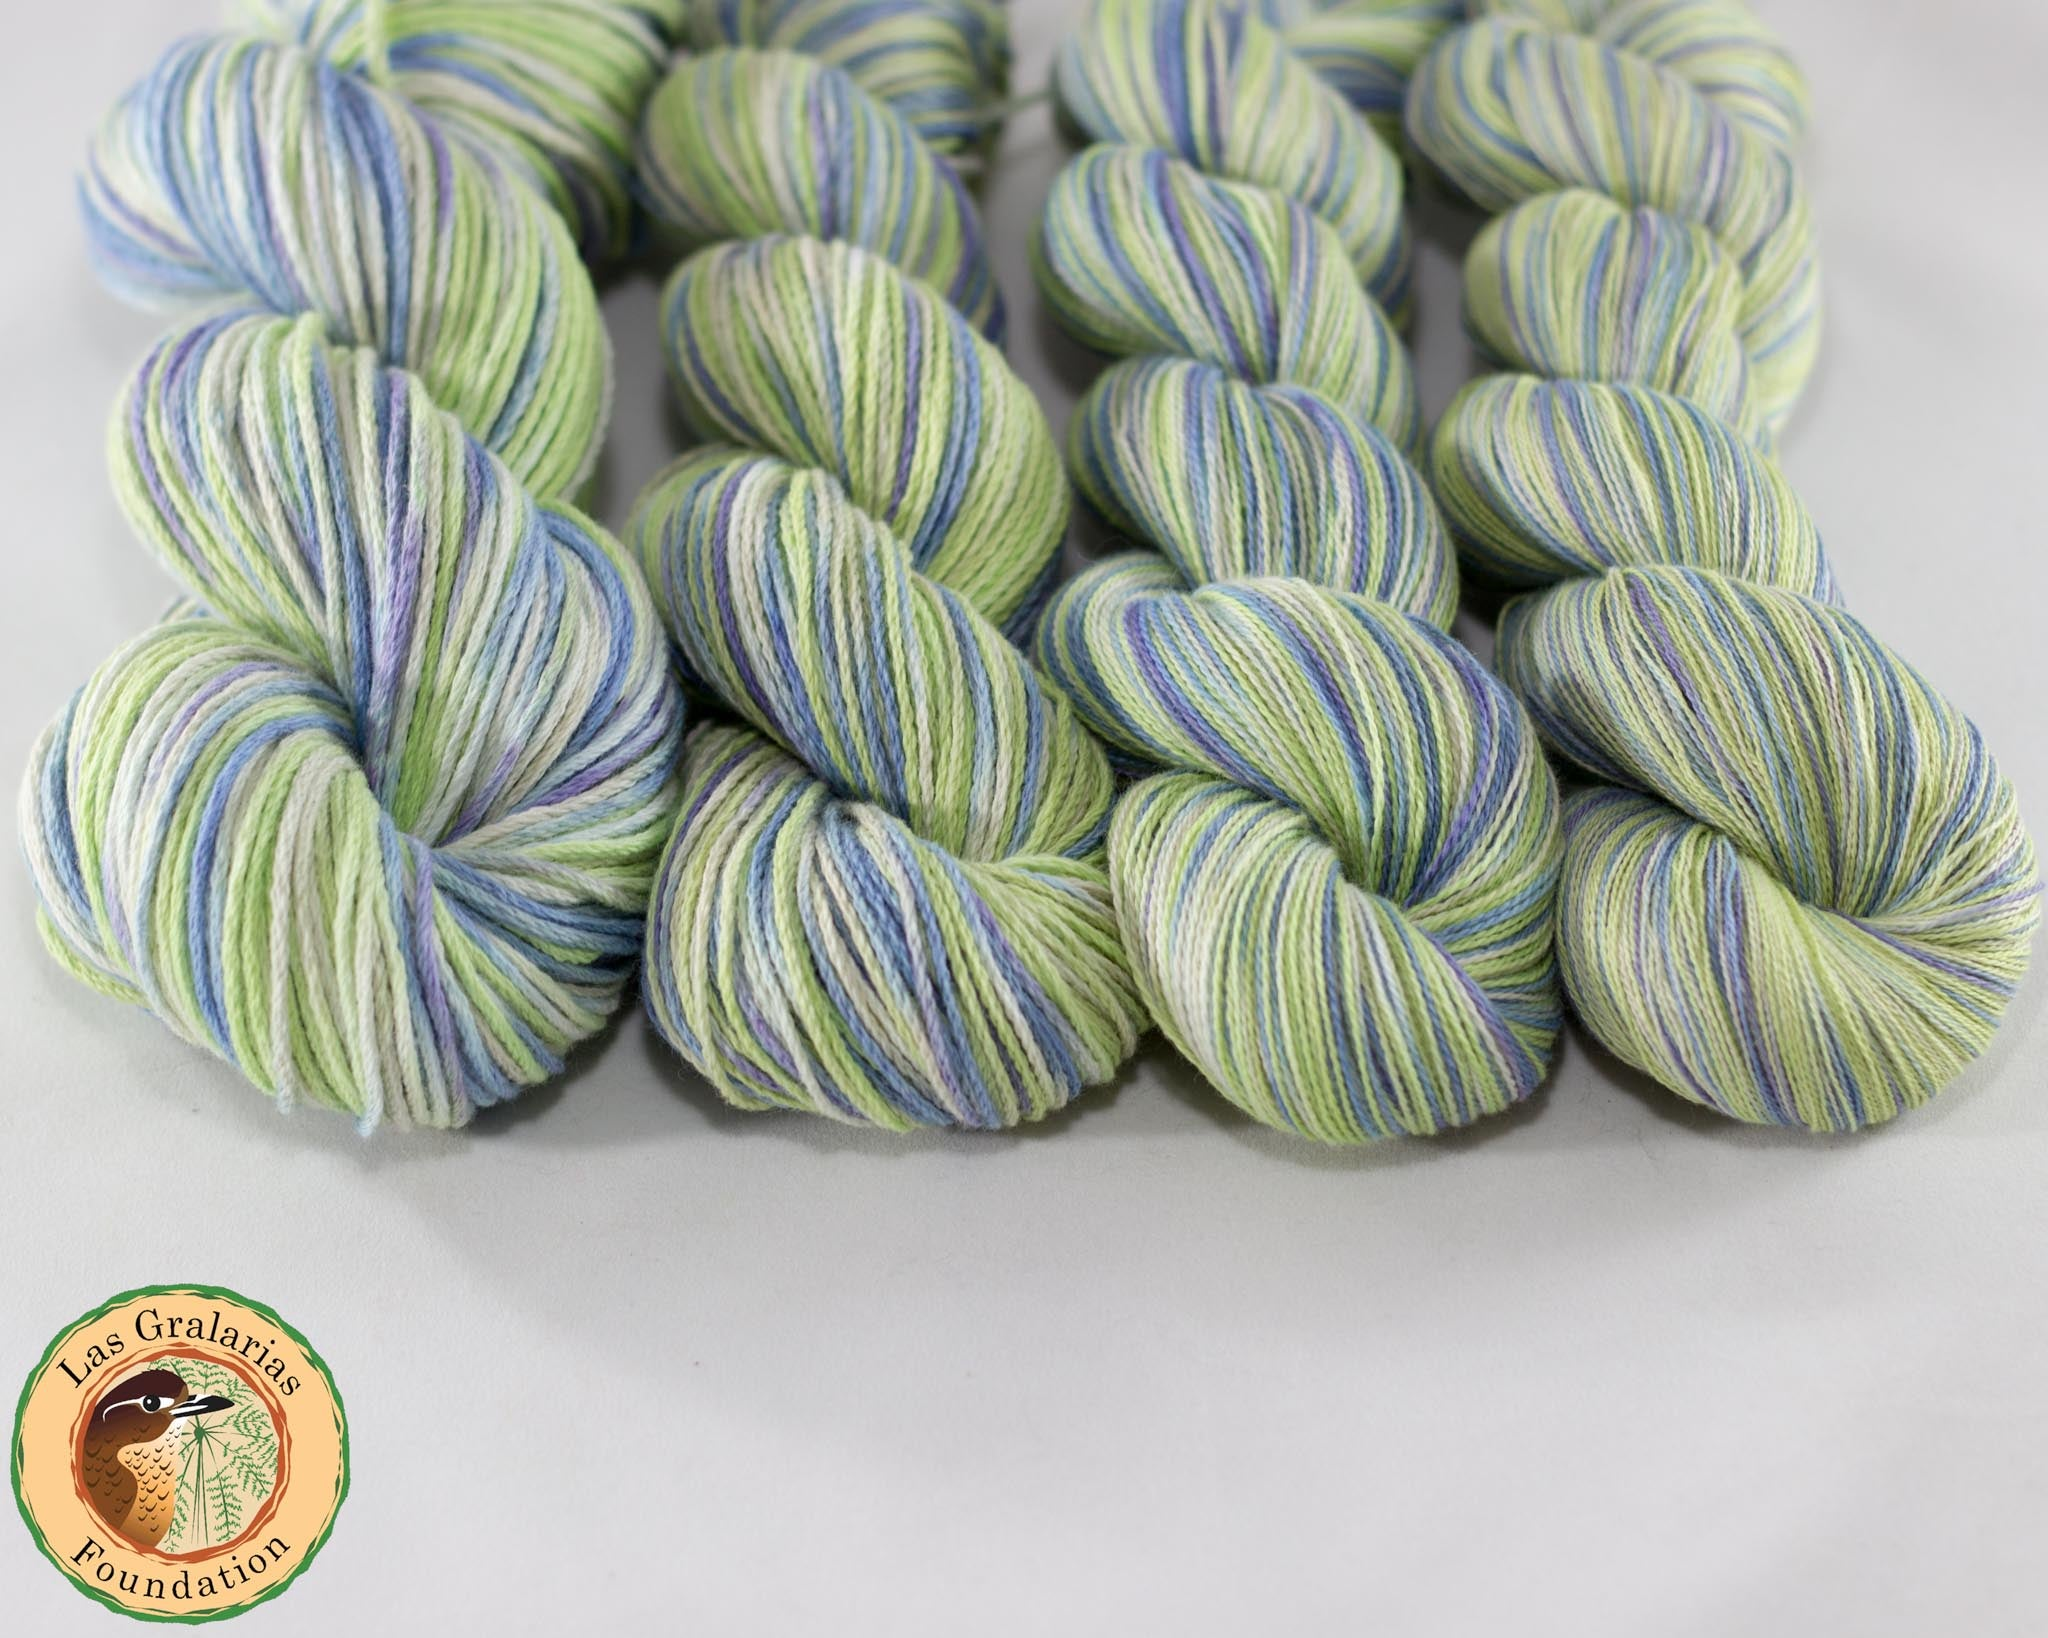 Moonlit Glassfrog - Buchanan Fiber Co.